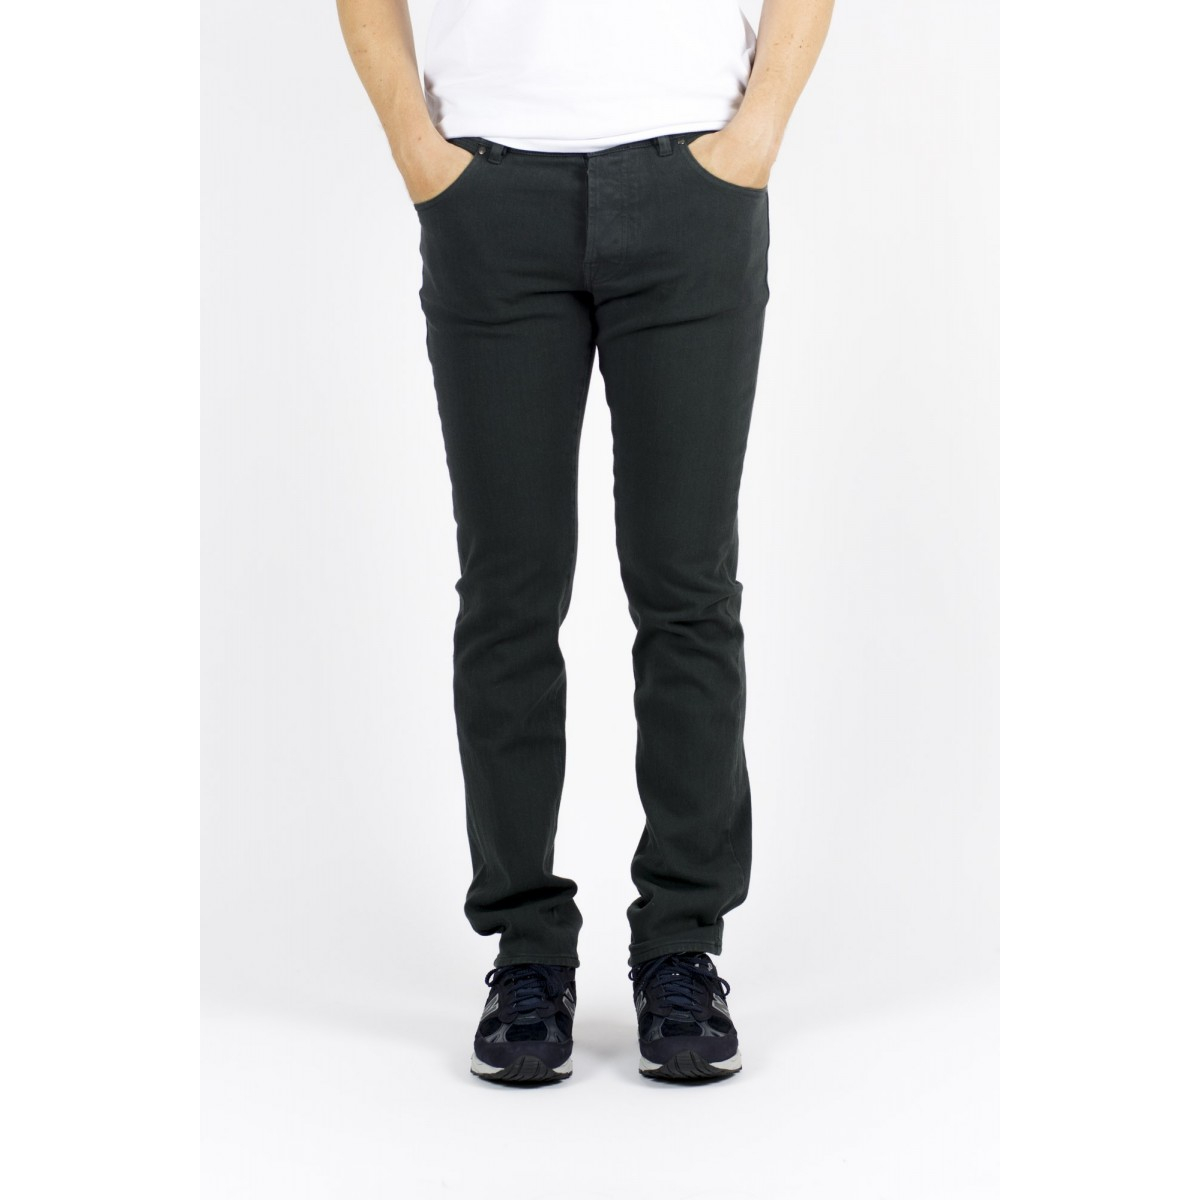 Trousers Thinple Man - Six 46 Twill Bistrech 818 . piombo